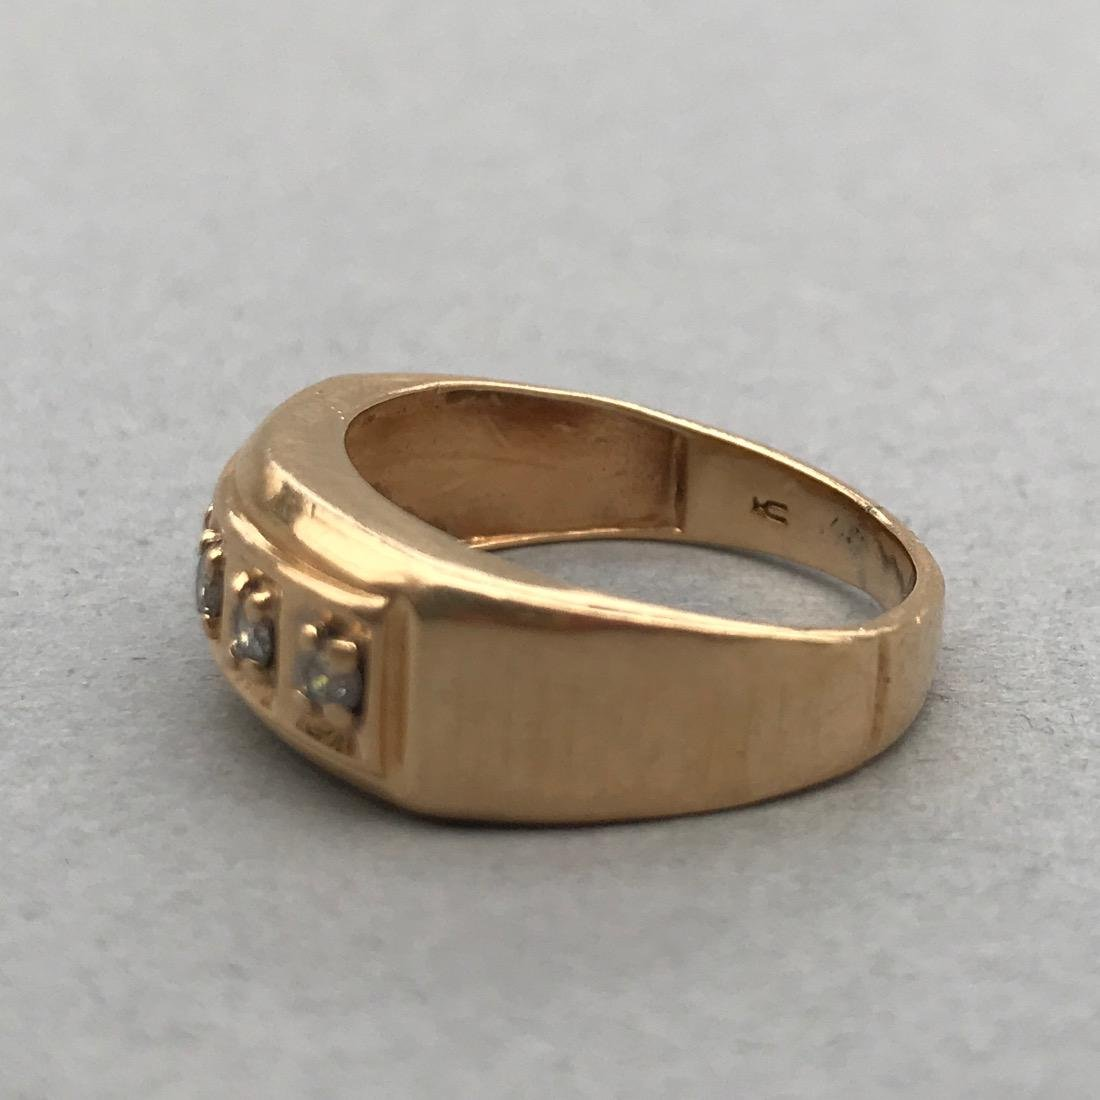 14K Gold Ring with 5 Diamonds - 4